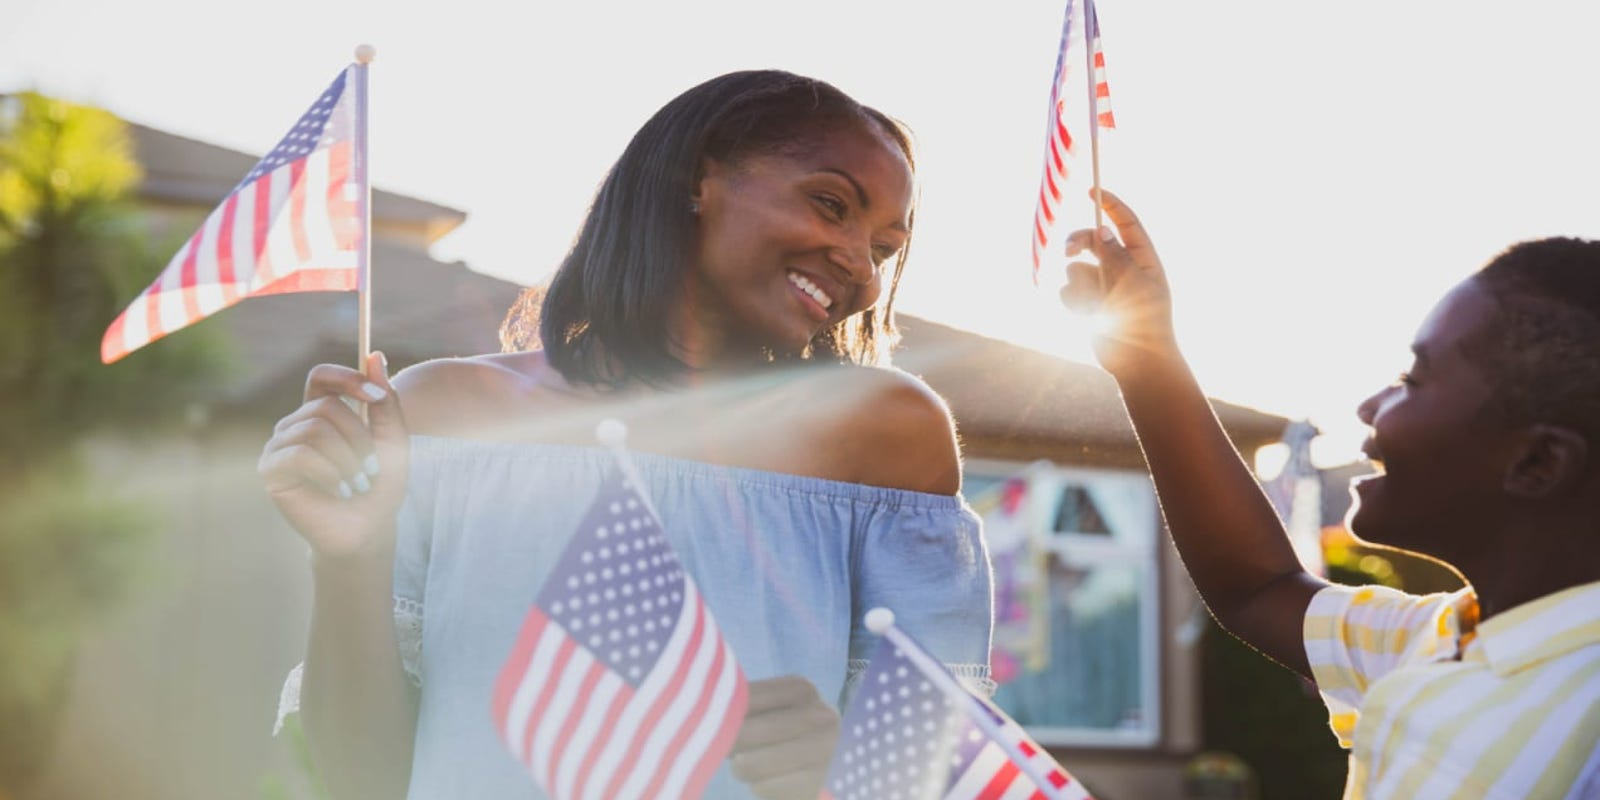 No fireworks, no problem: 7 creative ways to celebrate Fourth of July this year